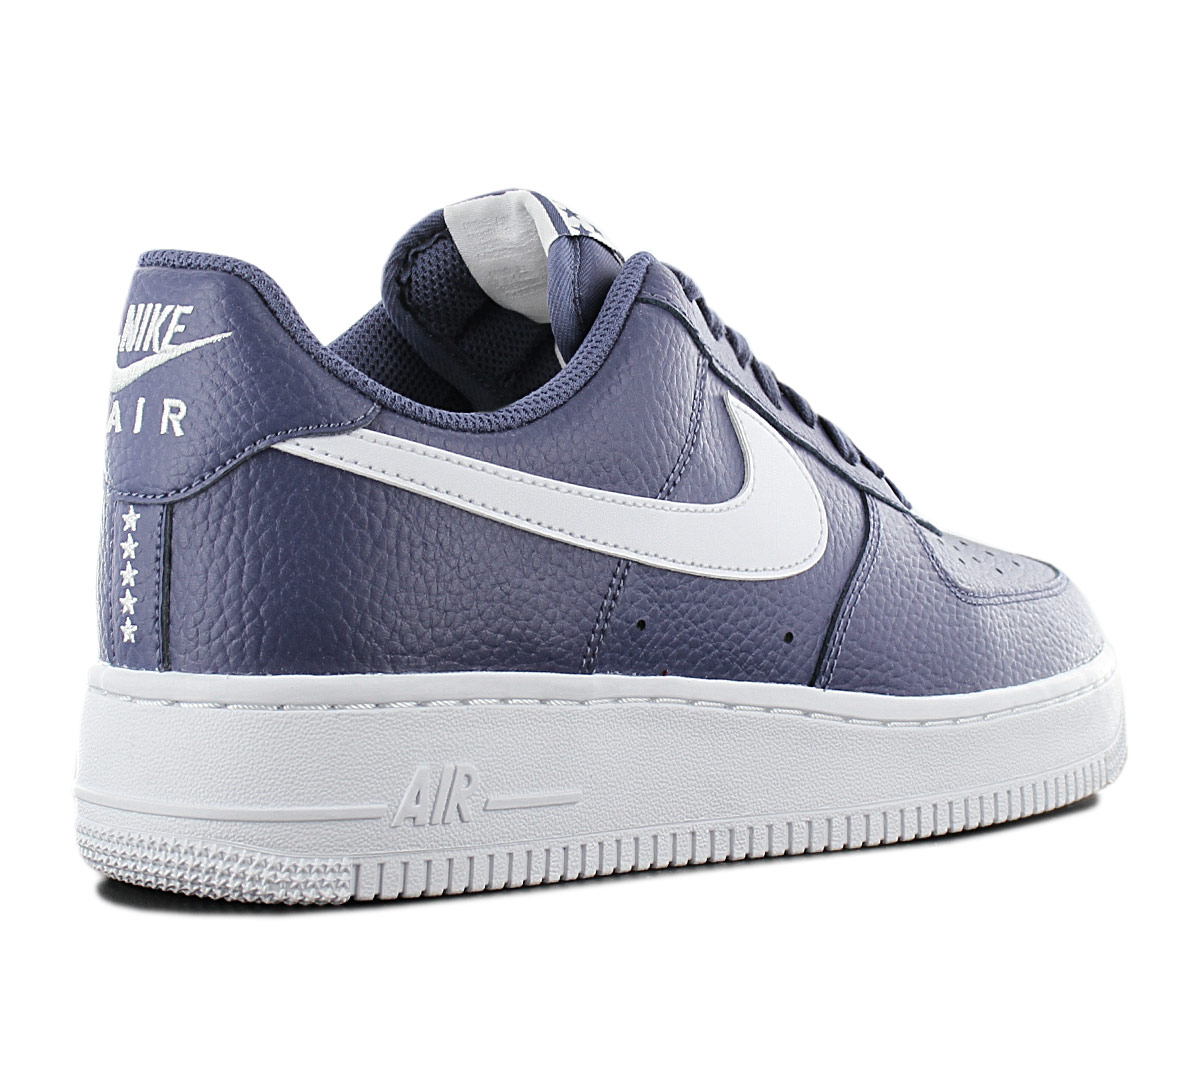 Details about Nike Air Force 1 One Low 07 Men's Sneakers Shoes AA4083 401 Leather Blue New